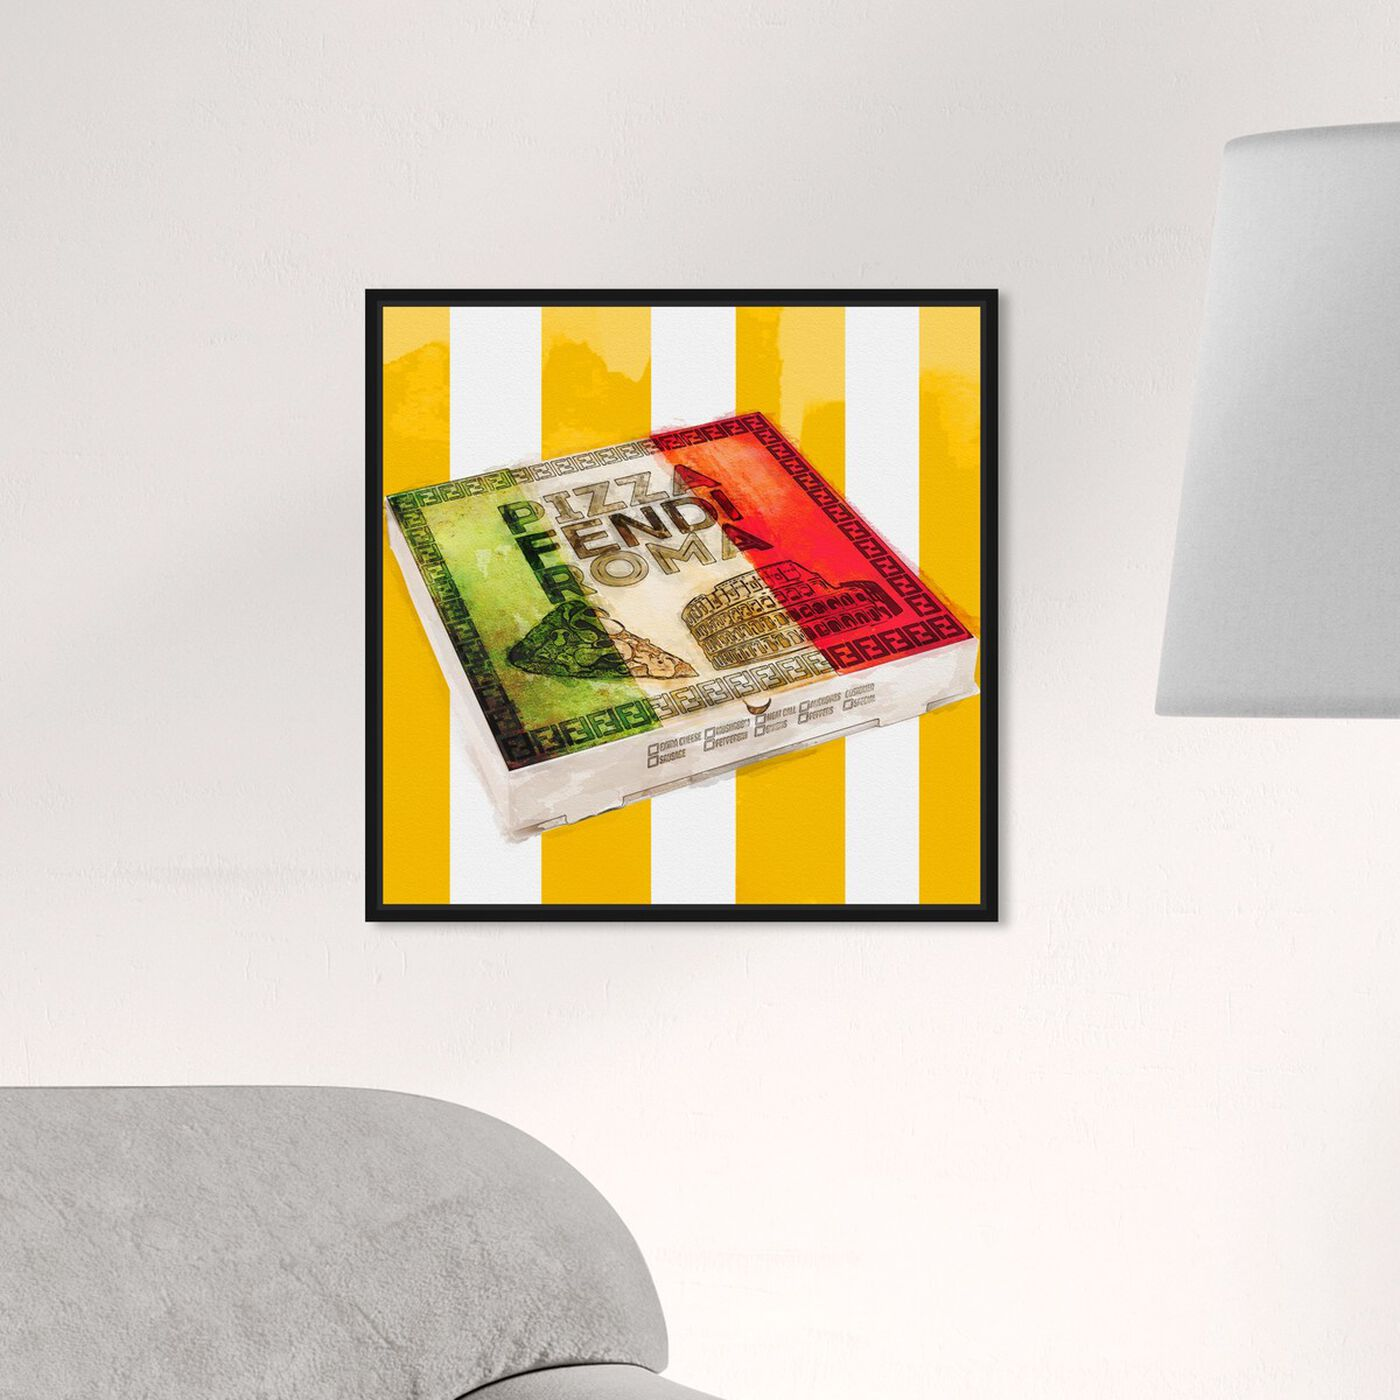 Hanging view of Italian Pizza Box  featuring food and cuisine and fast food art.